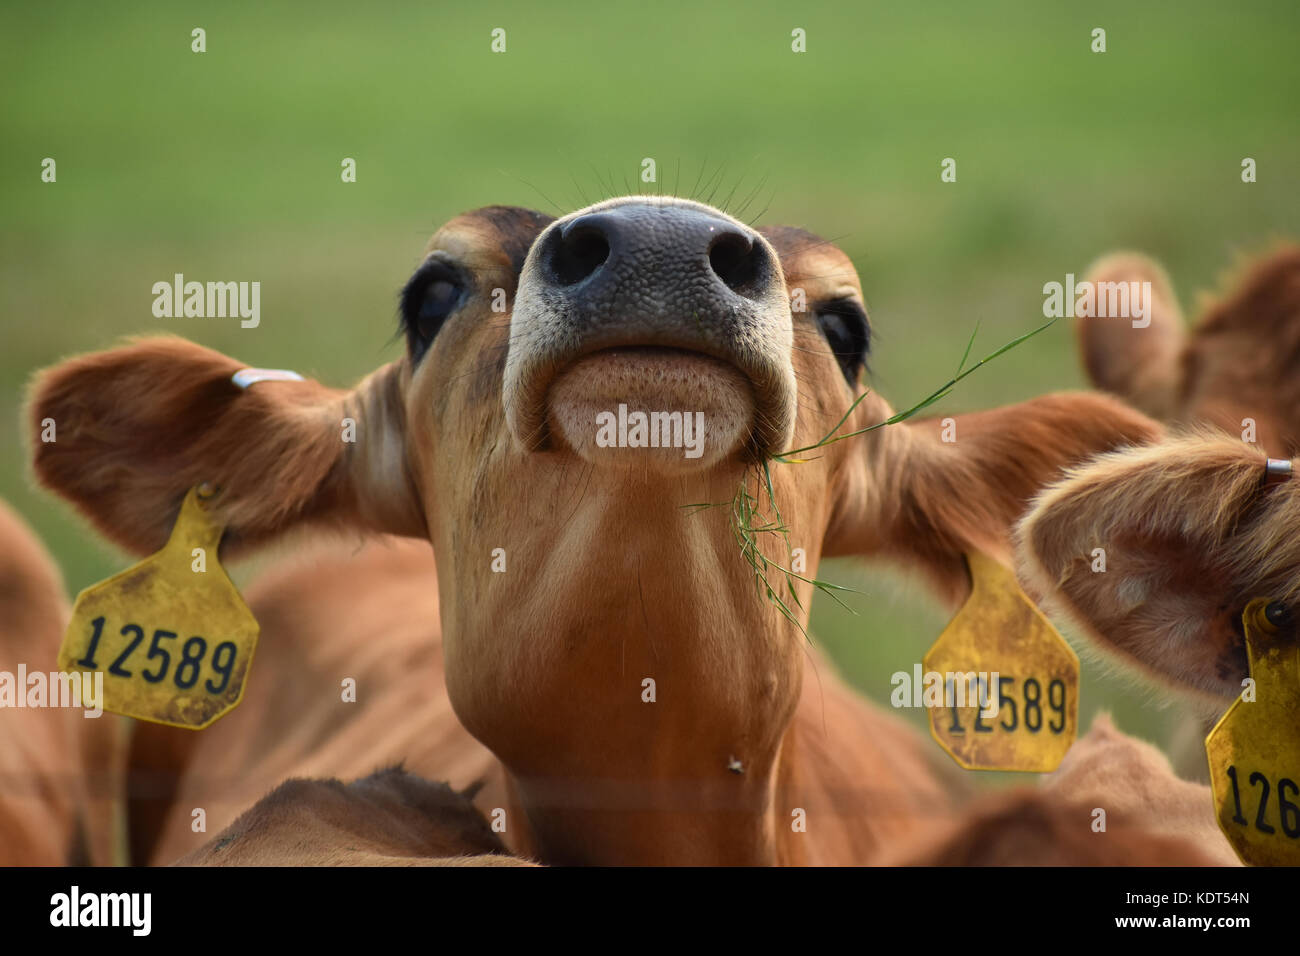 Cow with its head in the air eating grass while wearing identification tags - Stock Image